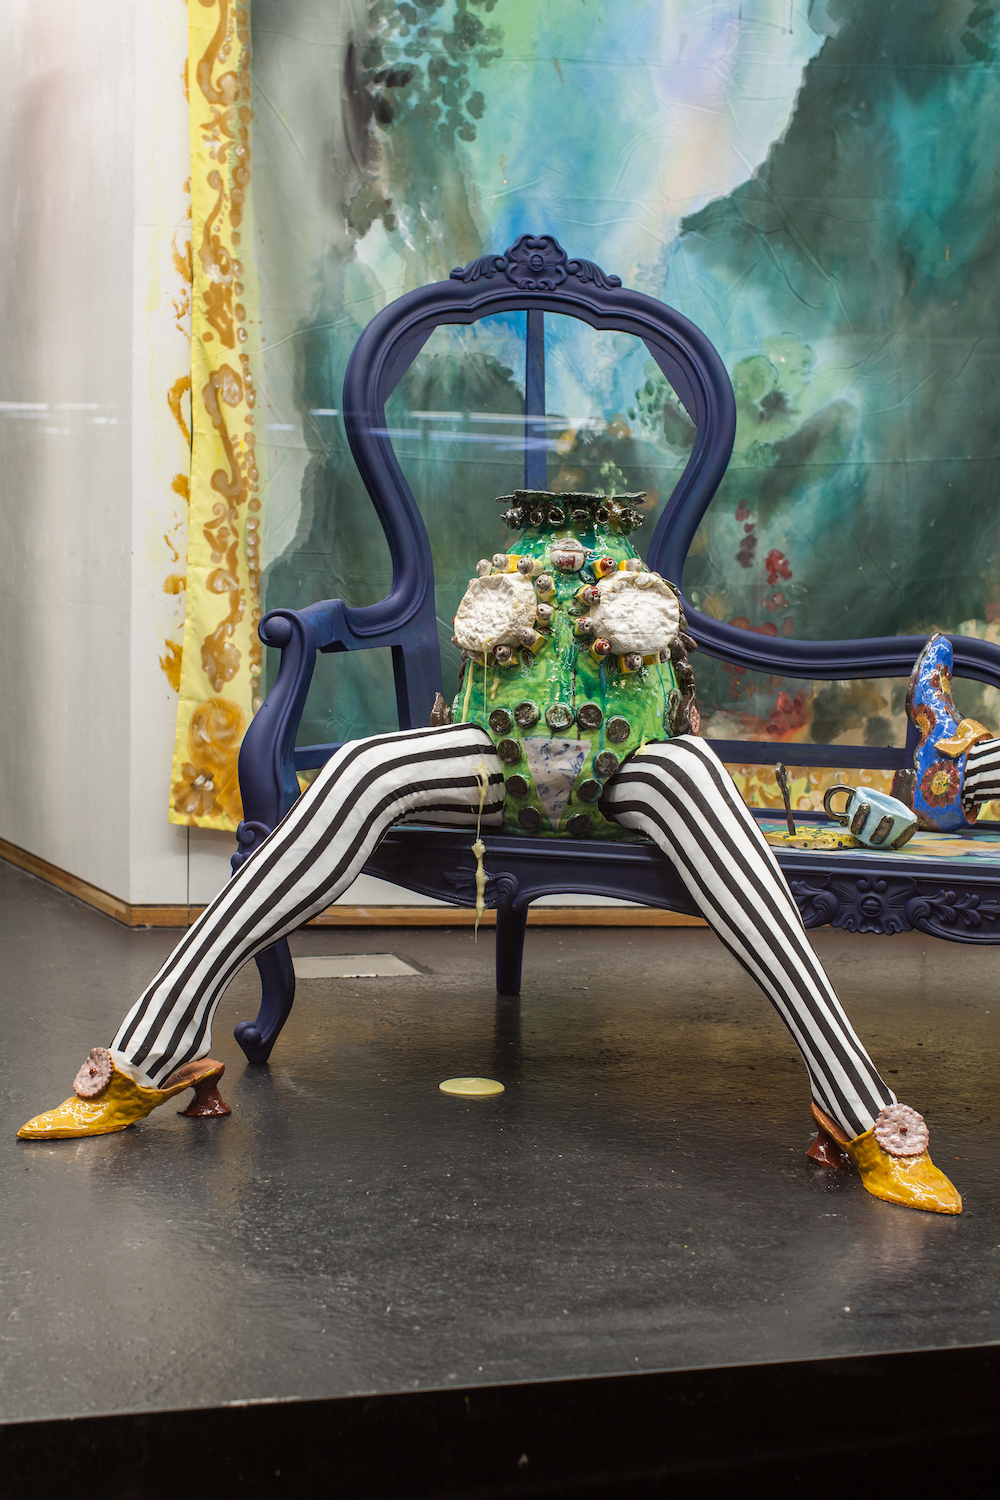 Lindsey Mendick, The Spectre at The Feast, 2018. Glazed ceramic, papier mâché, tights, chaise longue, acrylic paint, camembert. 111 x 112 x 166 cm. Photographer: Nicolas Gysin.